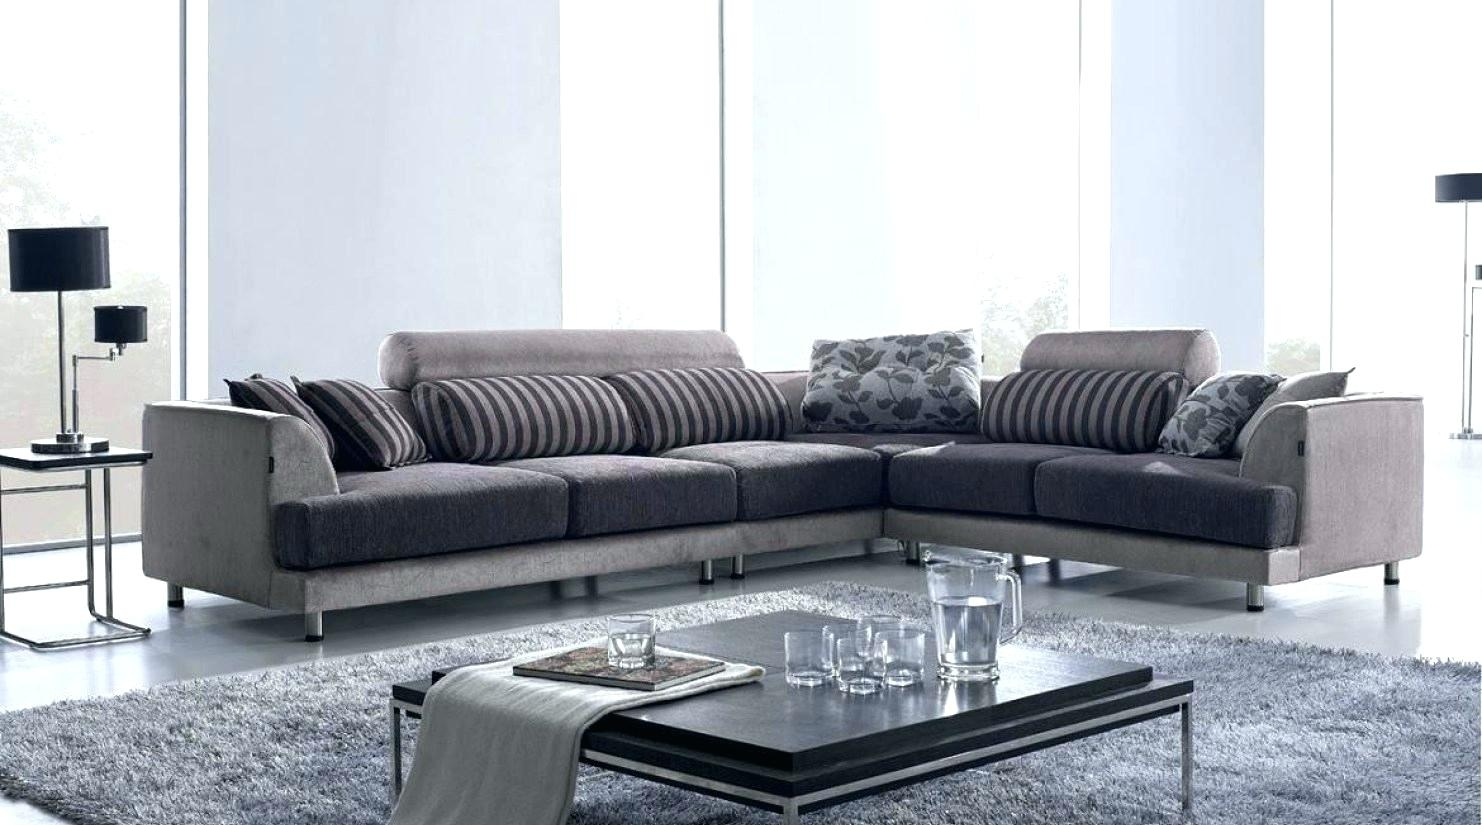 Decoration: Office Sofa Bed Black Leather For Furniture (Image 3 of 10)